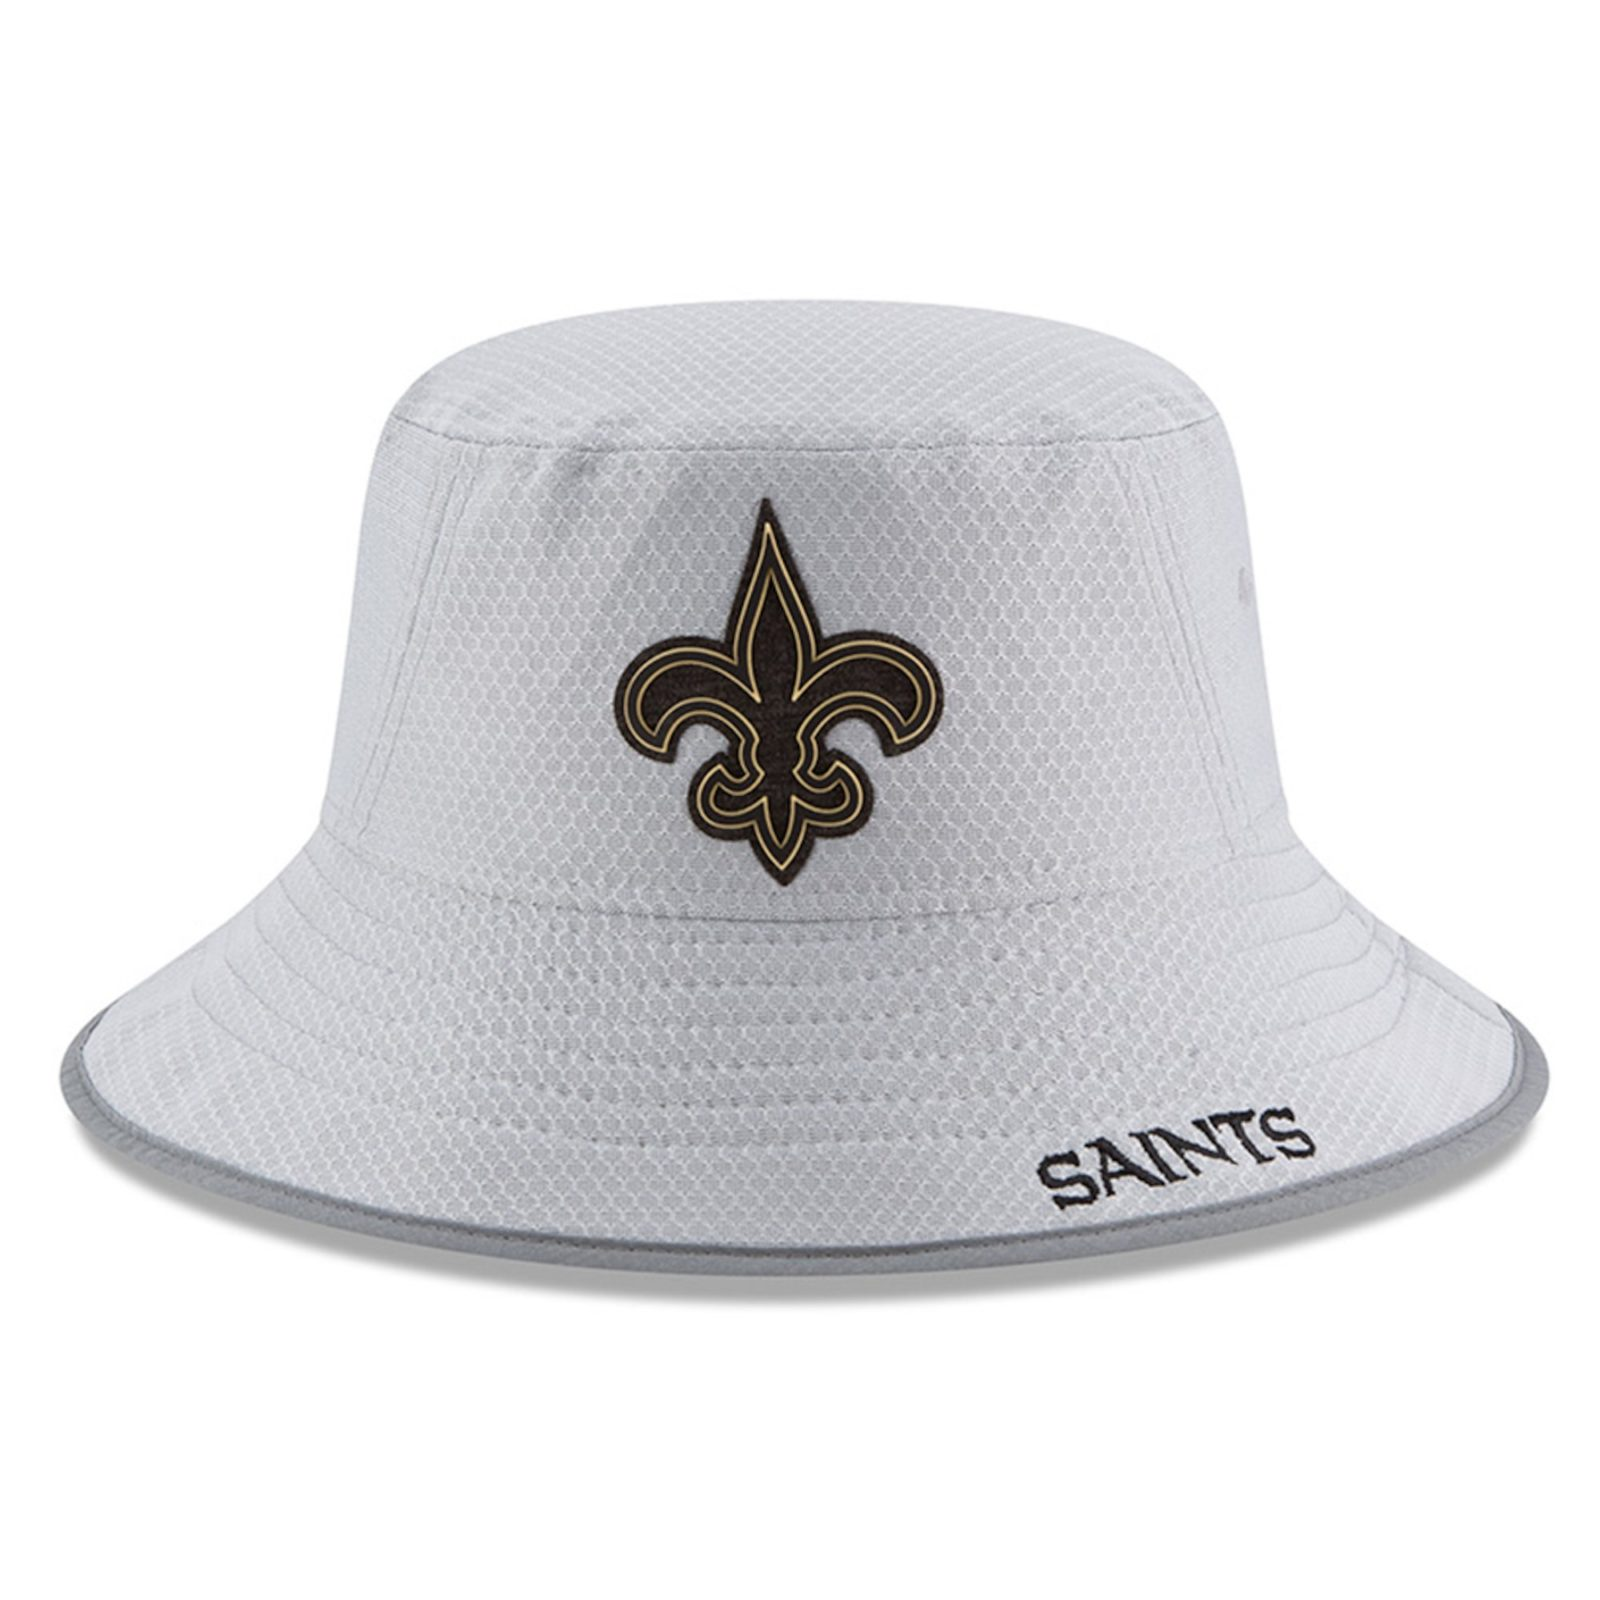 new styles bb2cb 2f0c4 New Orleans Saints New Era 2018 Training Camp Official Bucket Hat – Gray